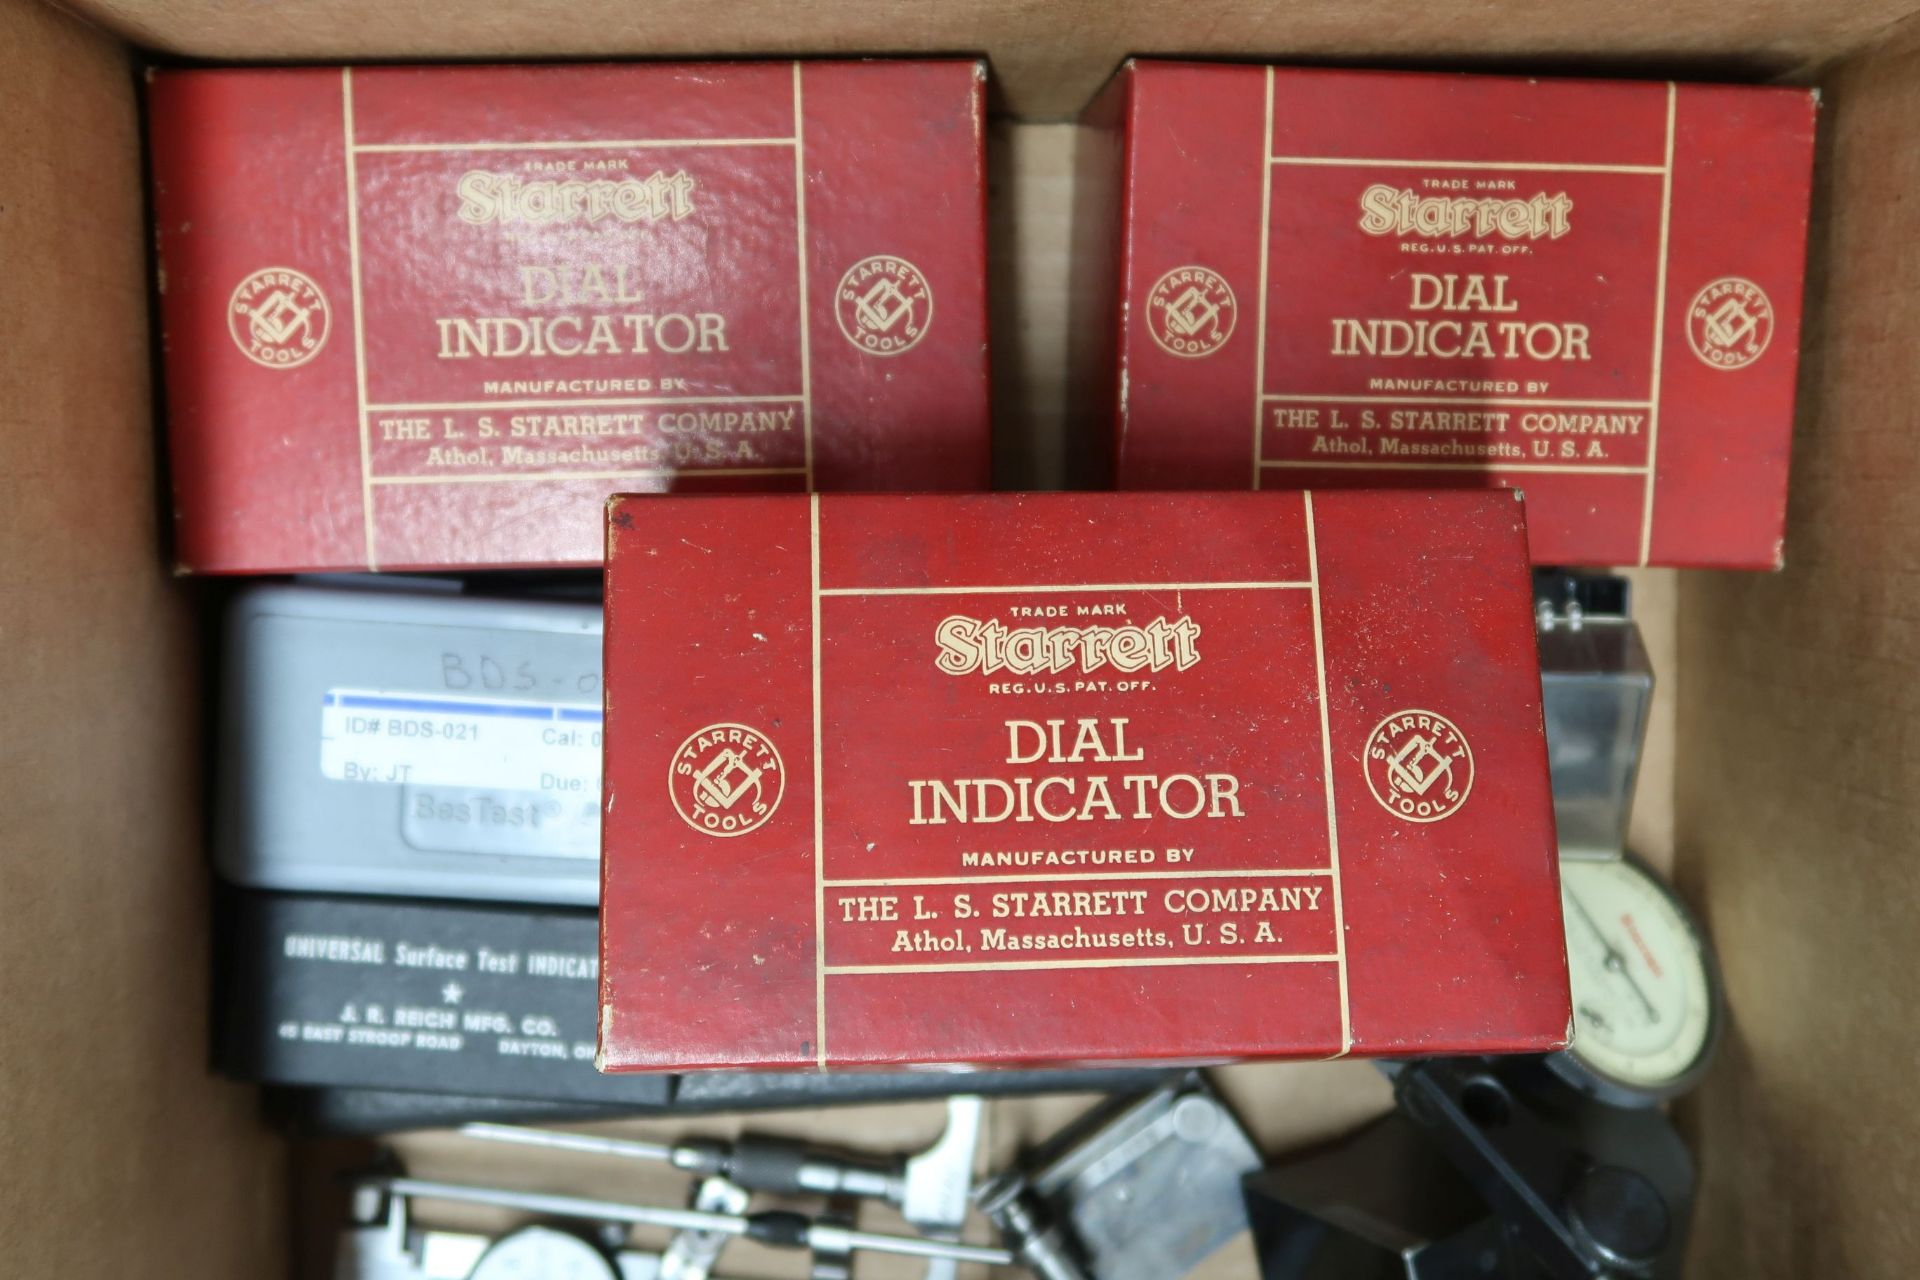 (LOT) MISC. INSPECTION GAGES - Image 5 of 5